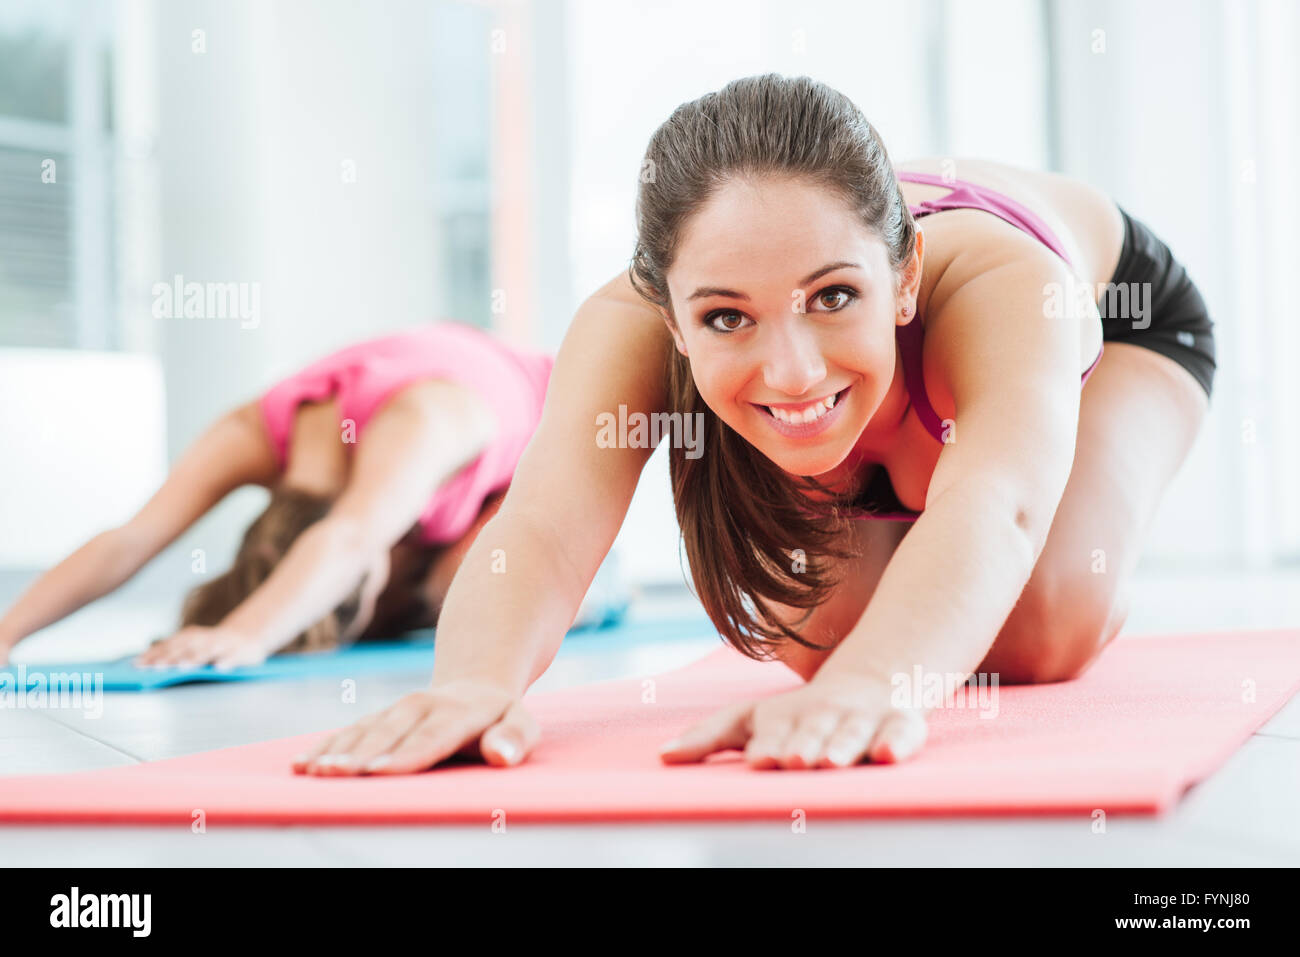 Girls at the gym doing stretching exercises on a mat, one is smiling at camera - Stock Image